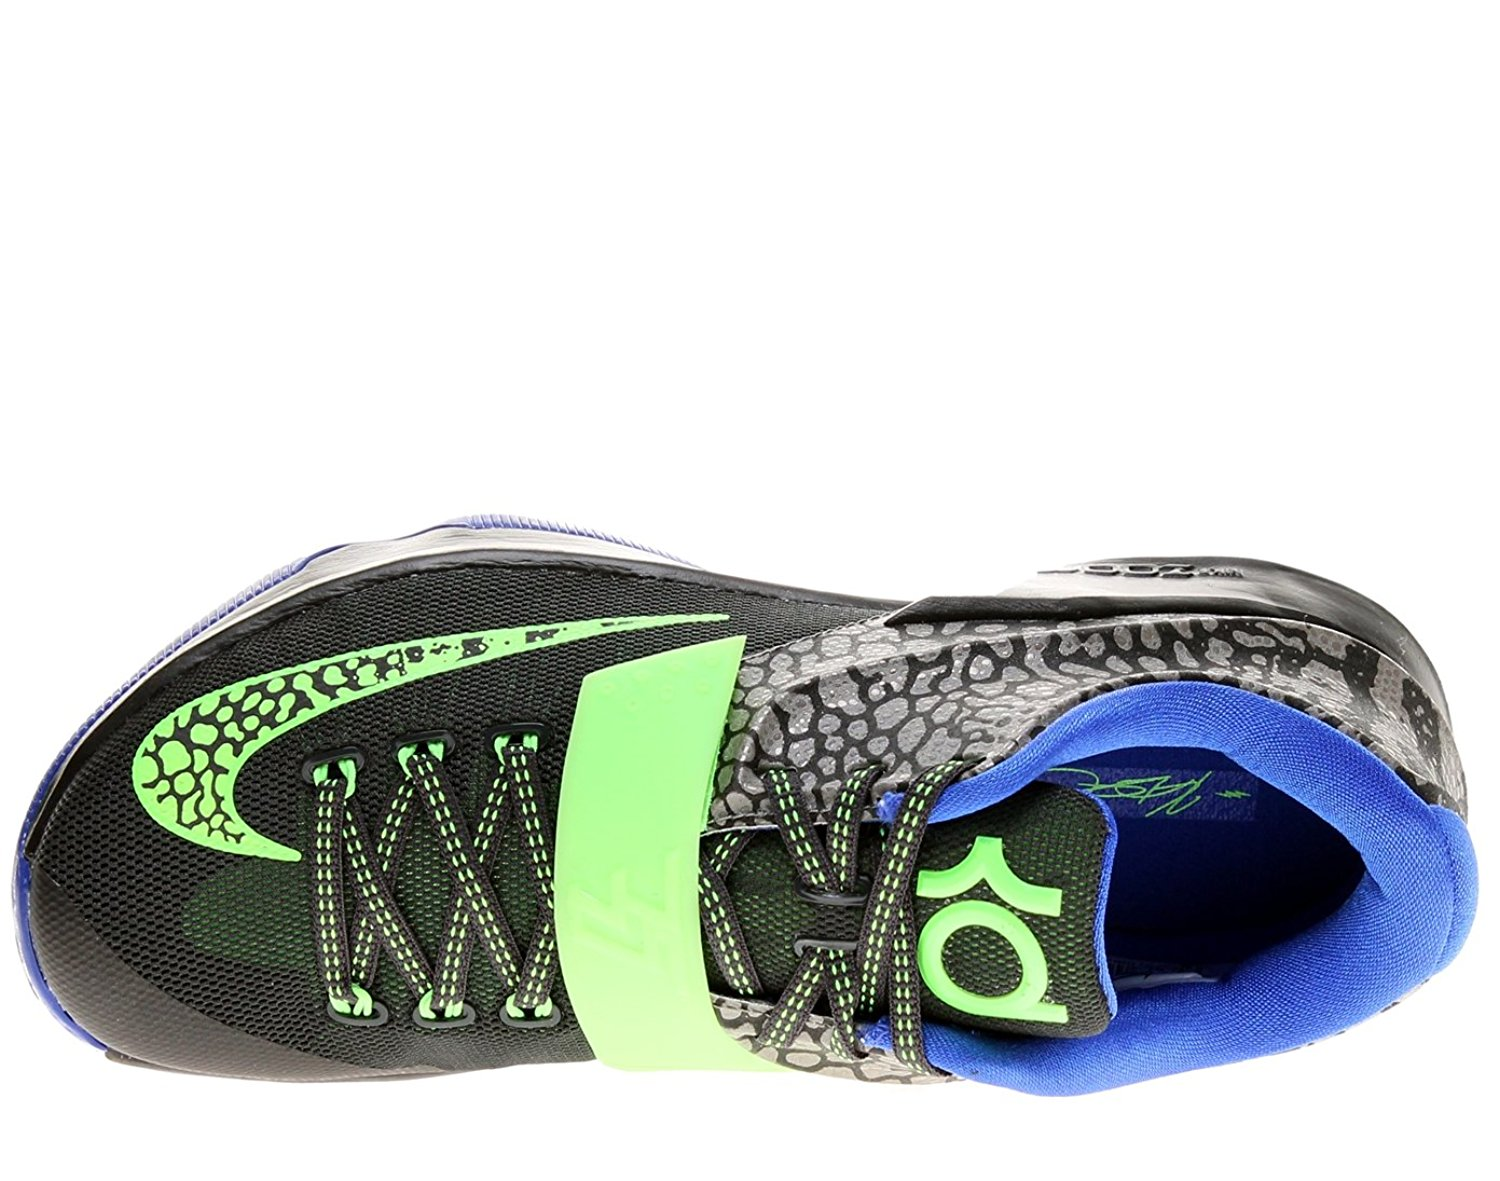 7a72c13a8ef8 Get Quotations · Nike KD VII Men s Basketball Shoes 653996-030